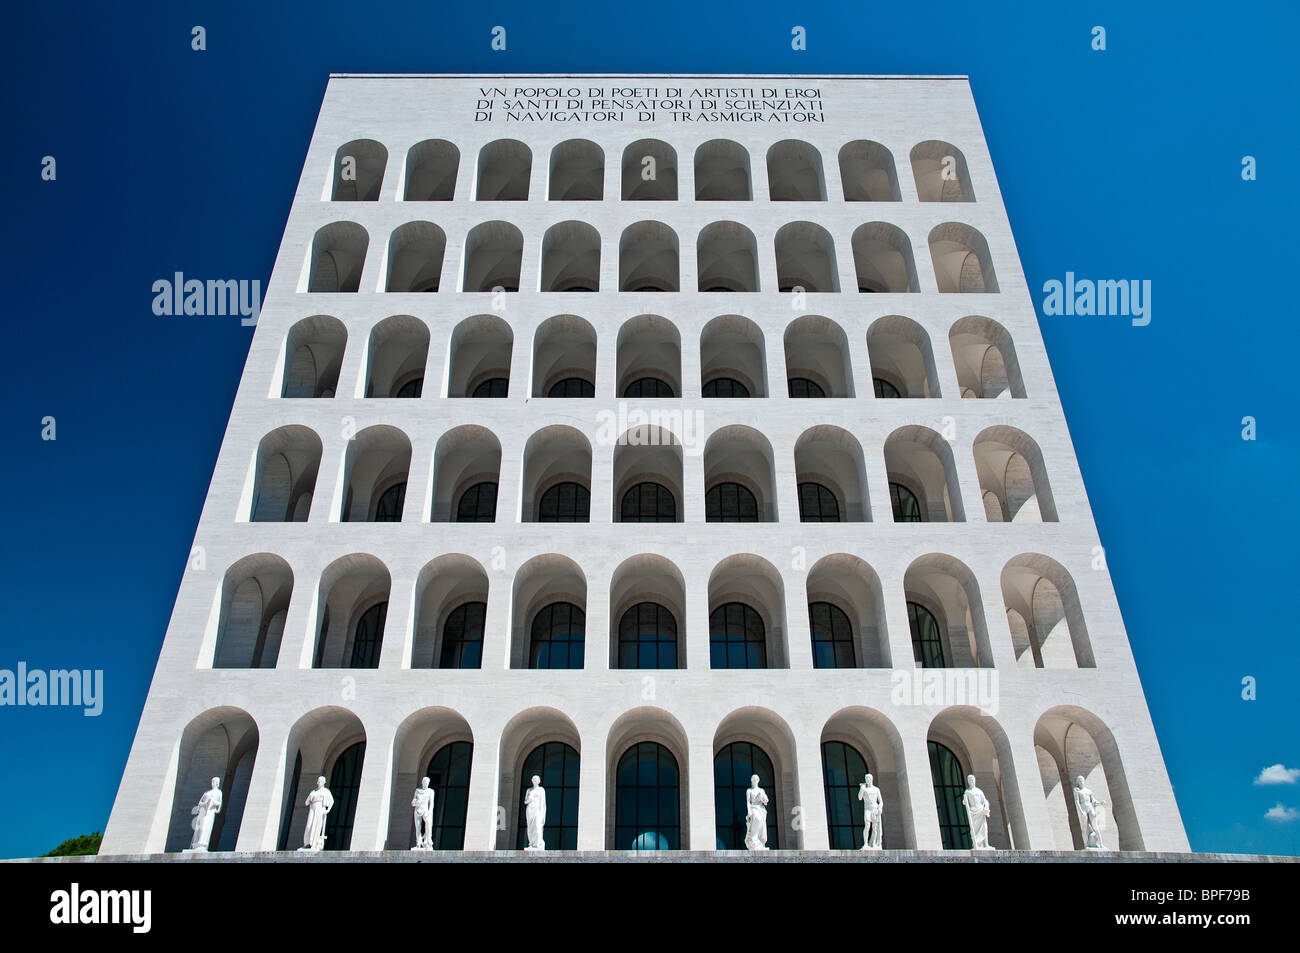 Palazzo della Civiltà Italiana building, icon of Fascist architecture, EUR district, Rome, Italy - Stock Image